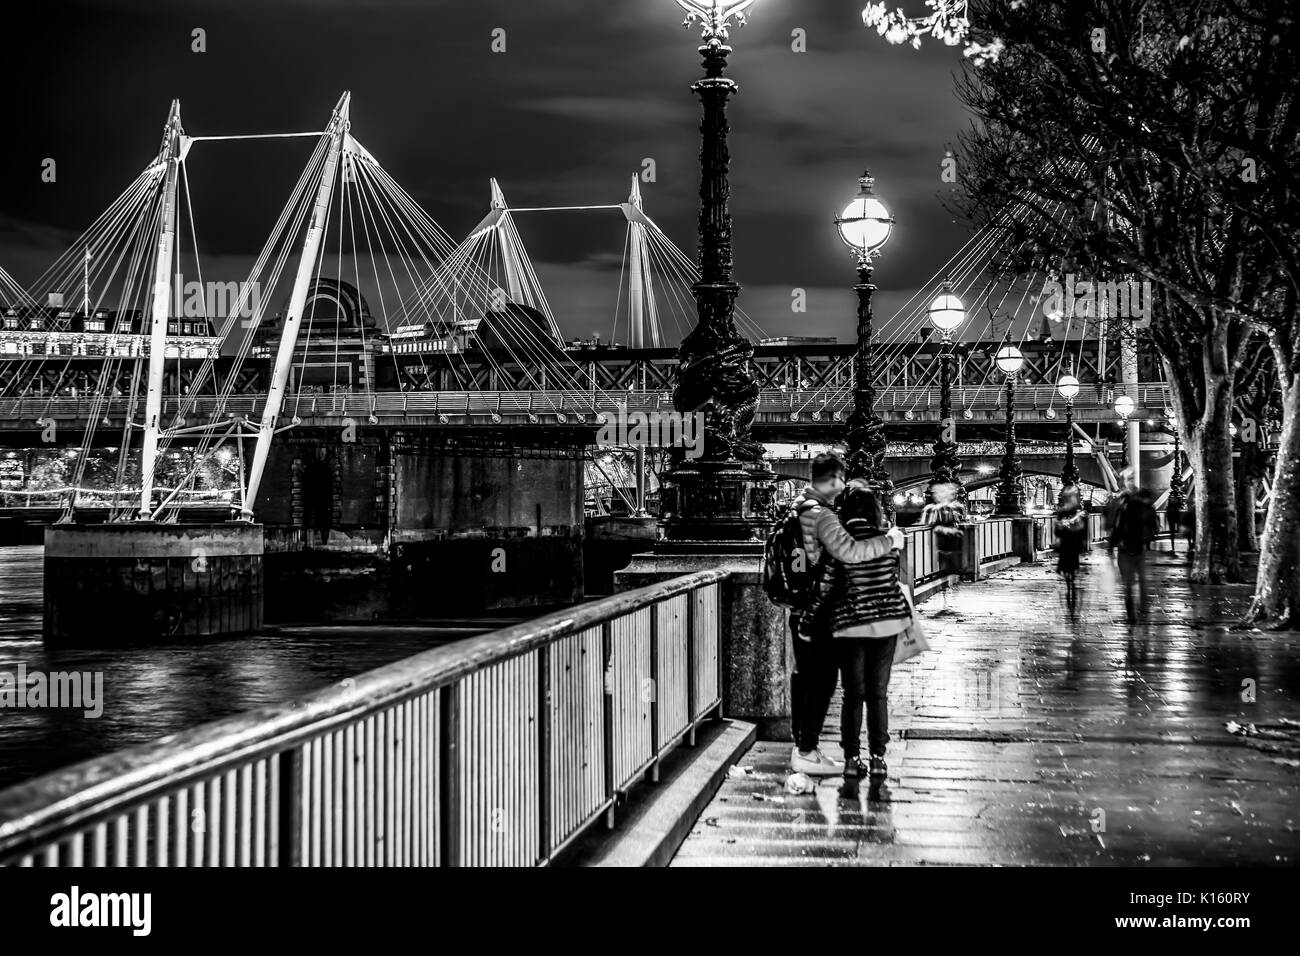 Beautiful South bank in London - romantic walk at River Thames - LONDON / ENGLAND - DECEMBER 6, 2017 - Stock Image